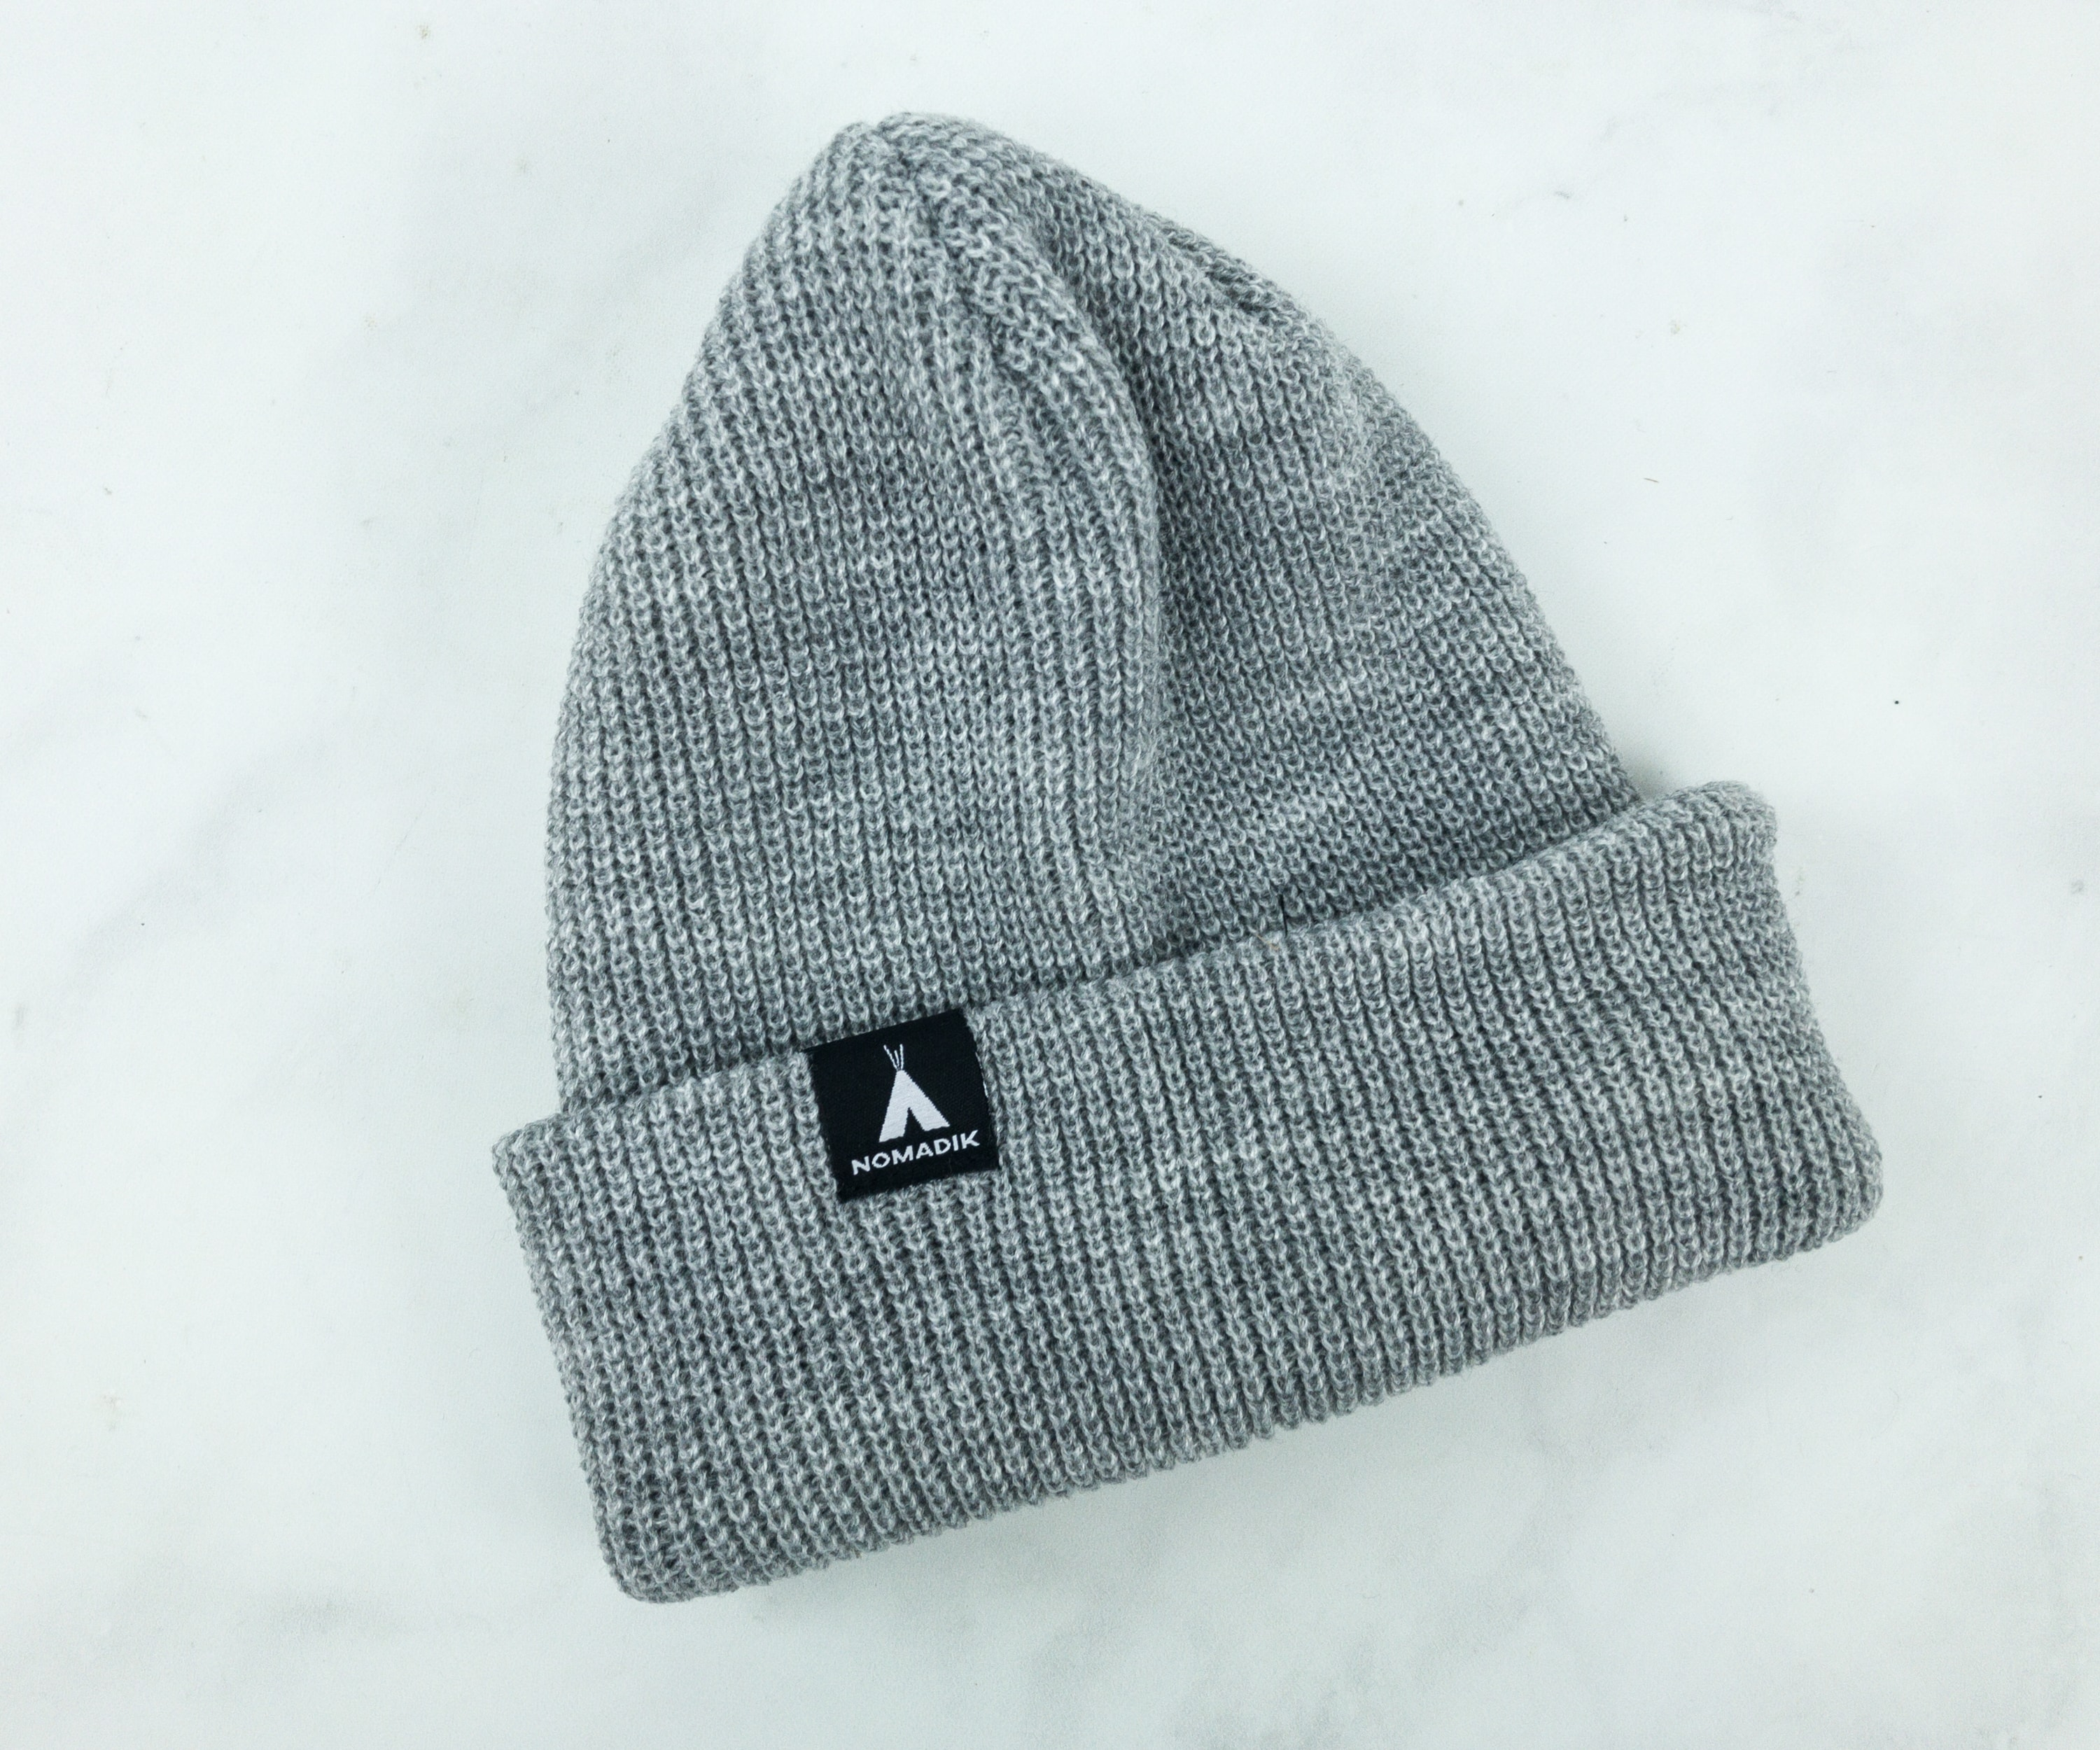 50d02d57923 There s a Nomadik logo on the beanie. You can fold the edges to keep it  snug on your head or give that extra flair by leaving the top a bit loose